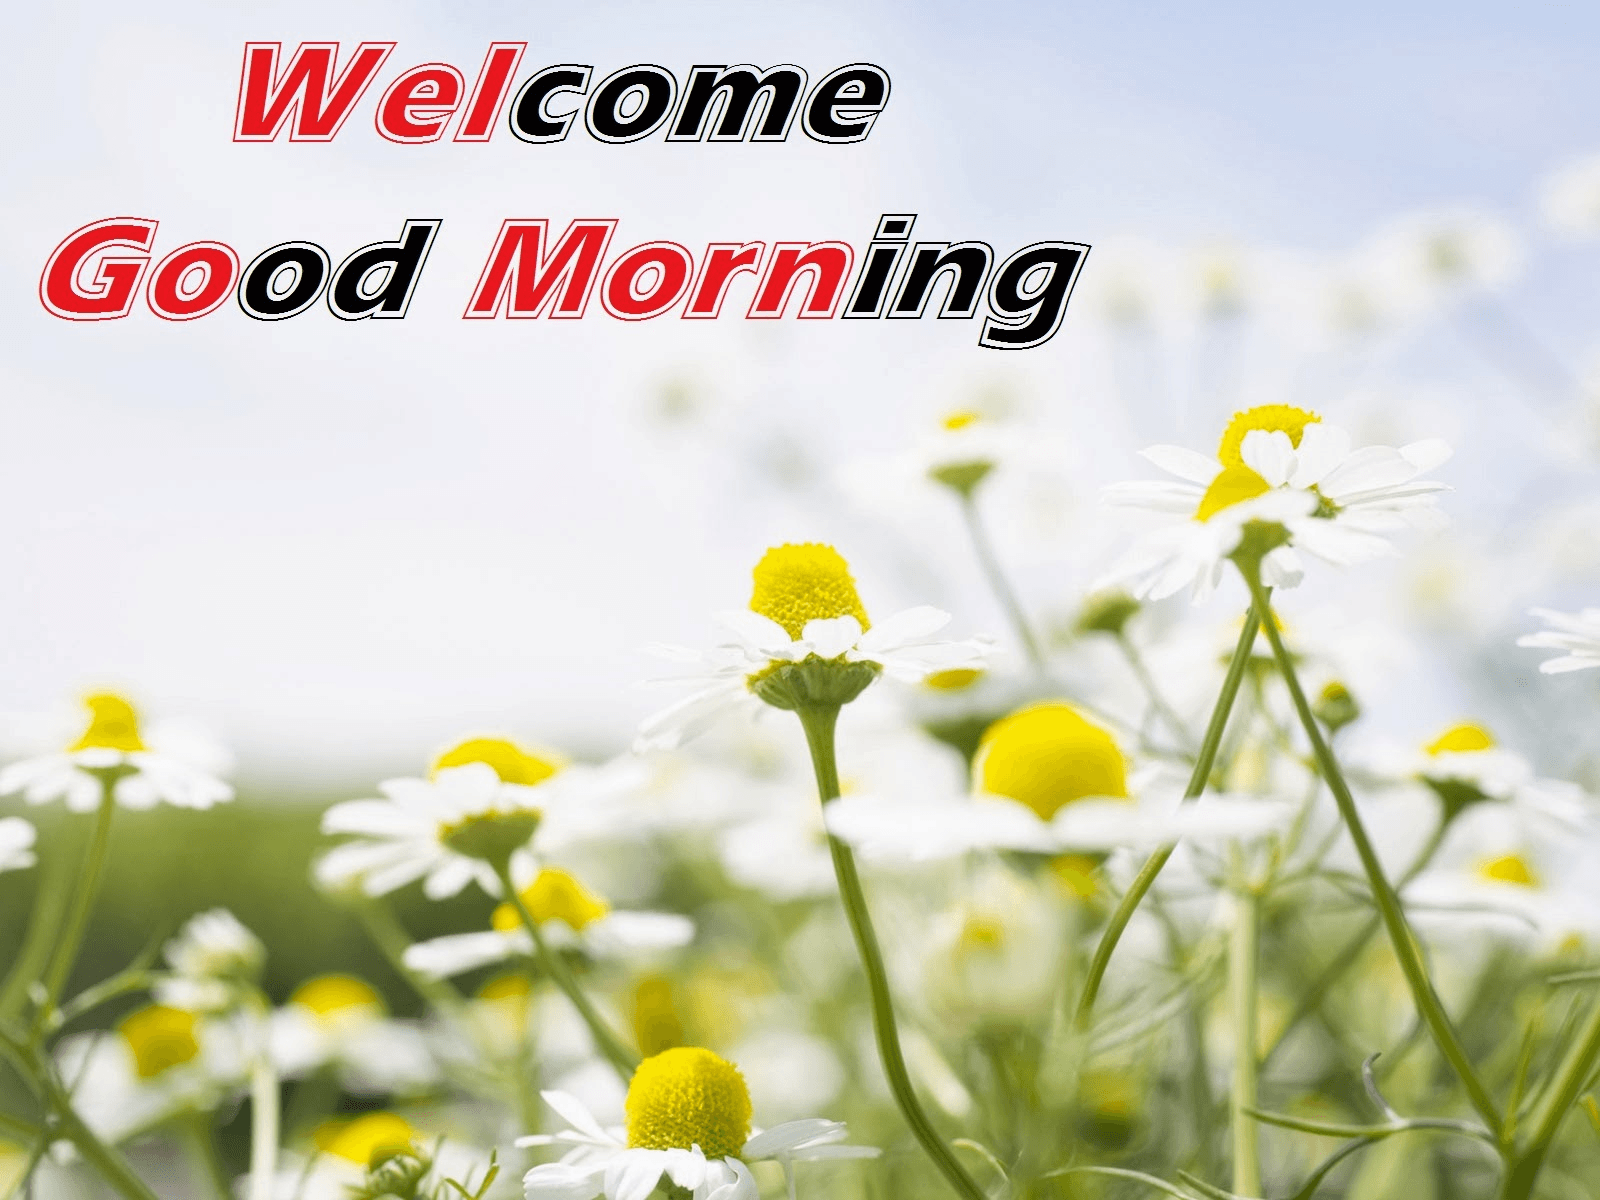 Good Morning Friends Wallpapers For Facebook Wallpaper Cave